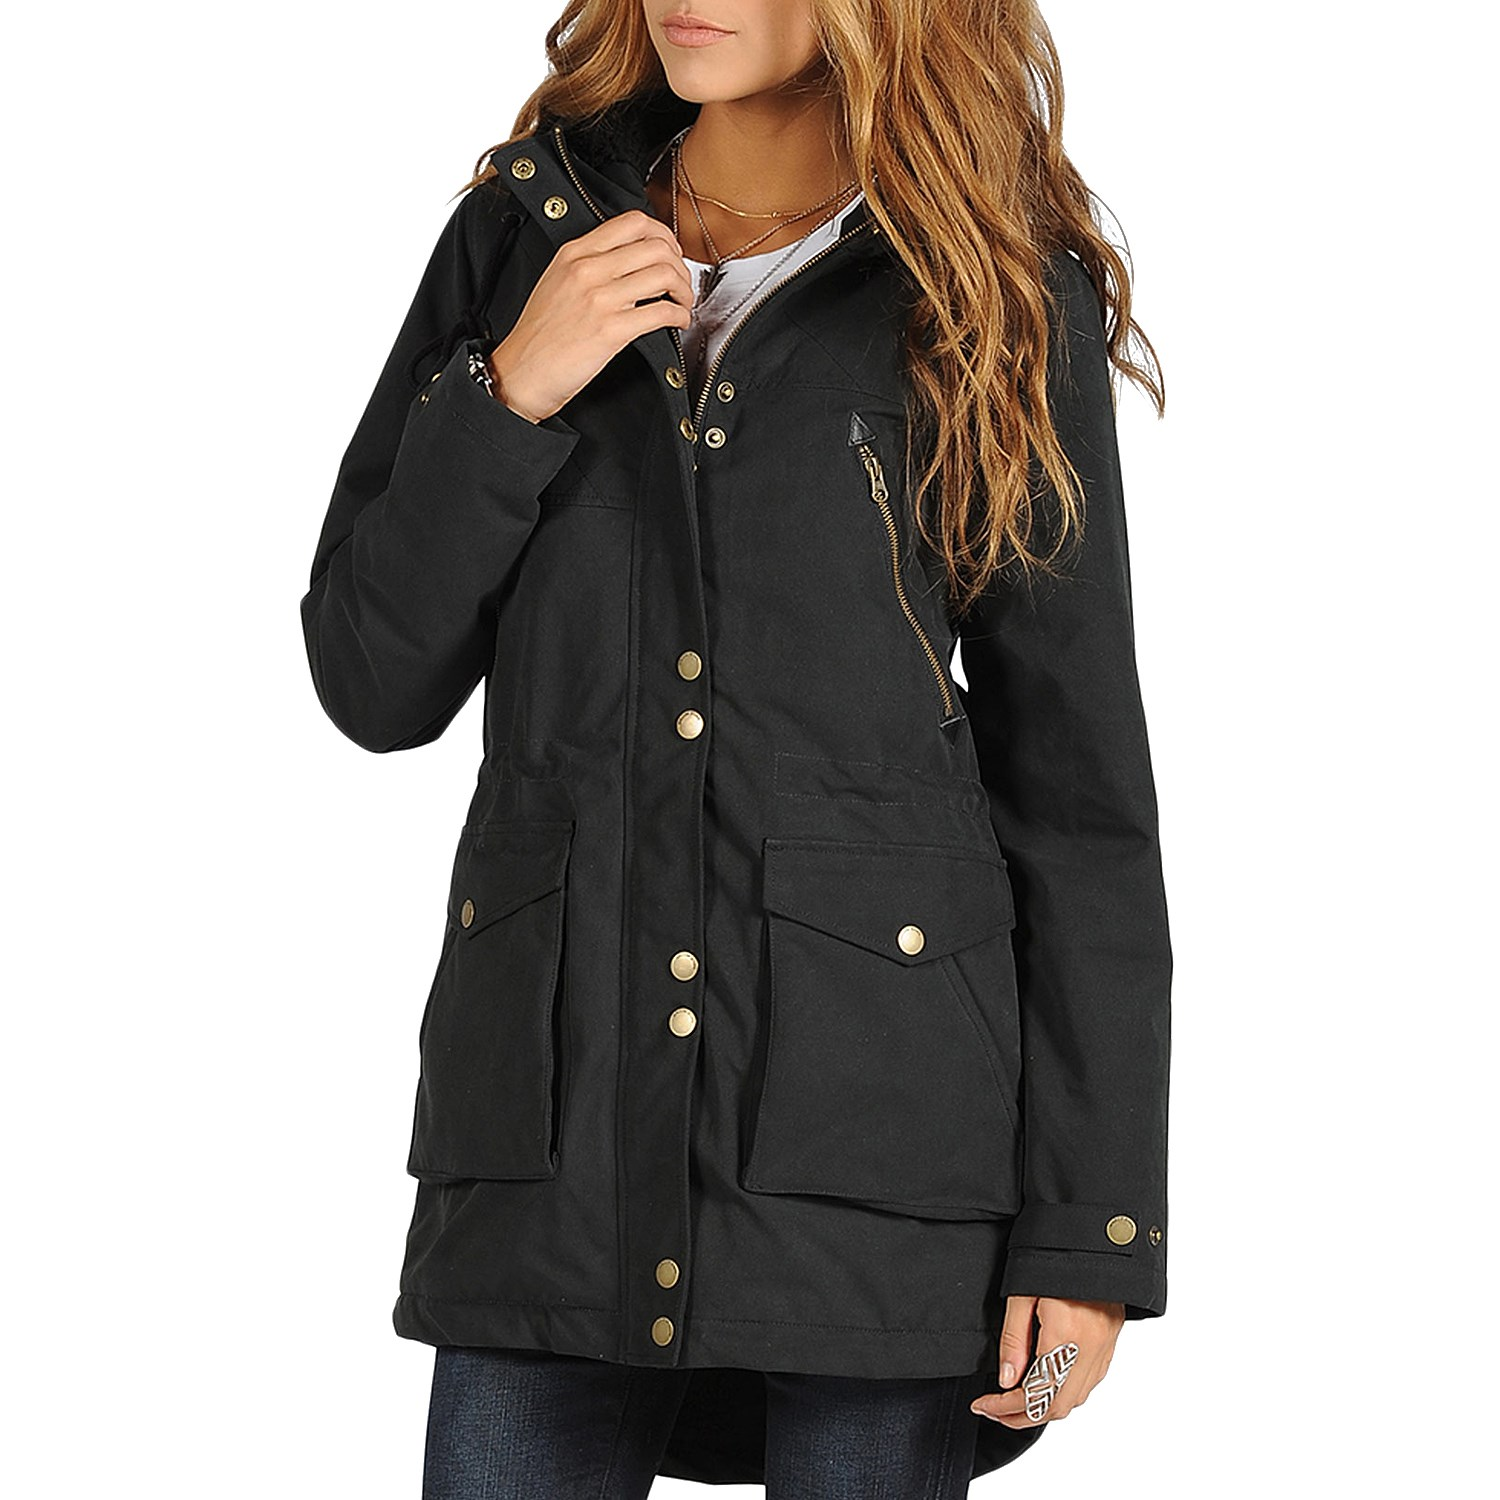 Womens Black Parka Jacket - JacketIn